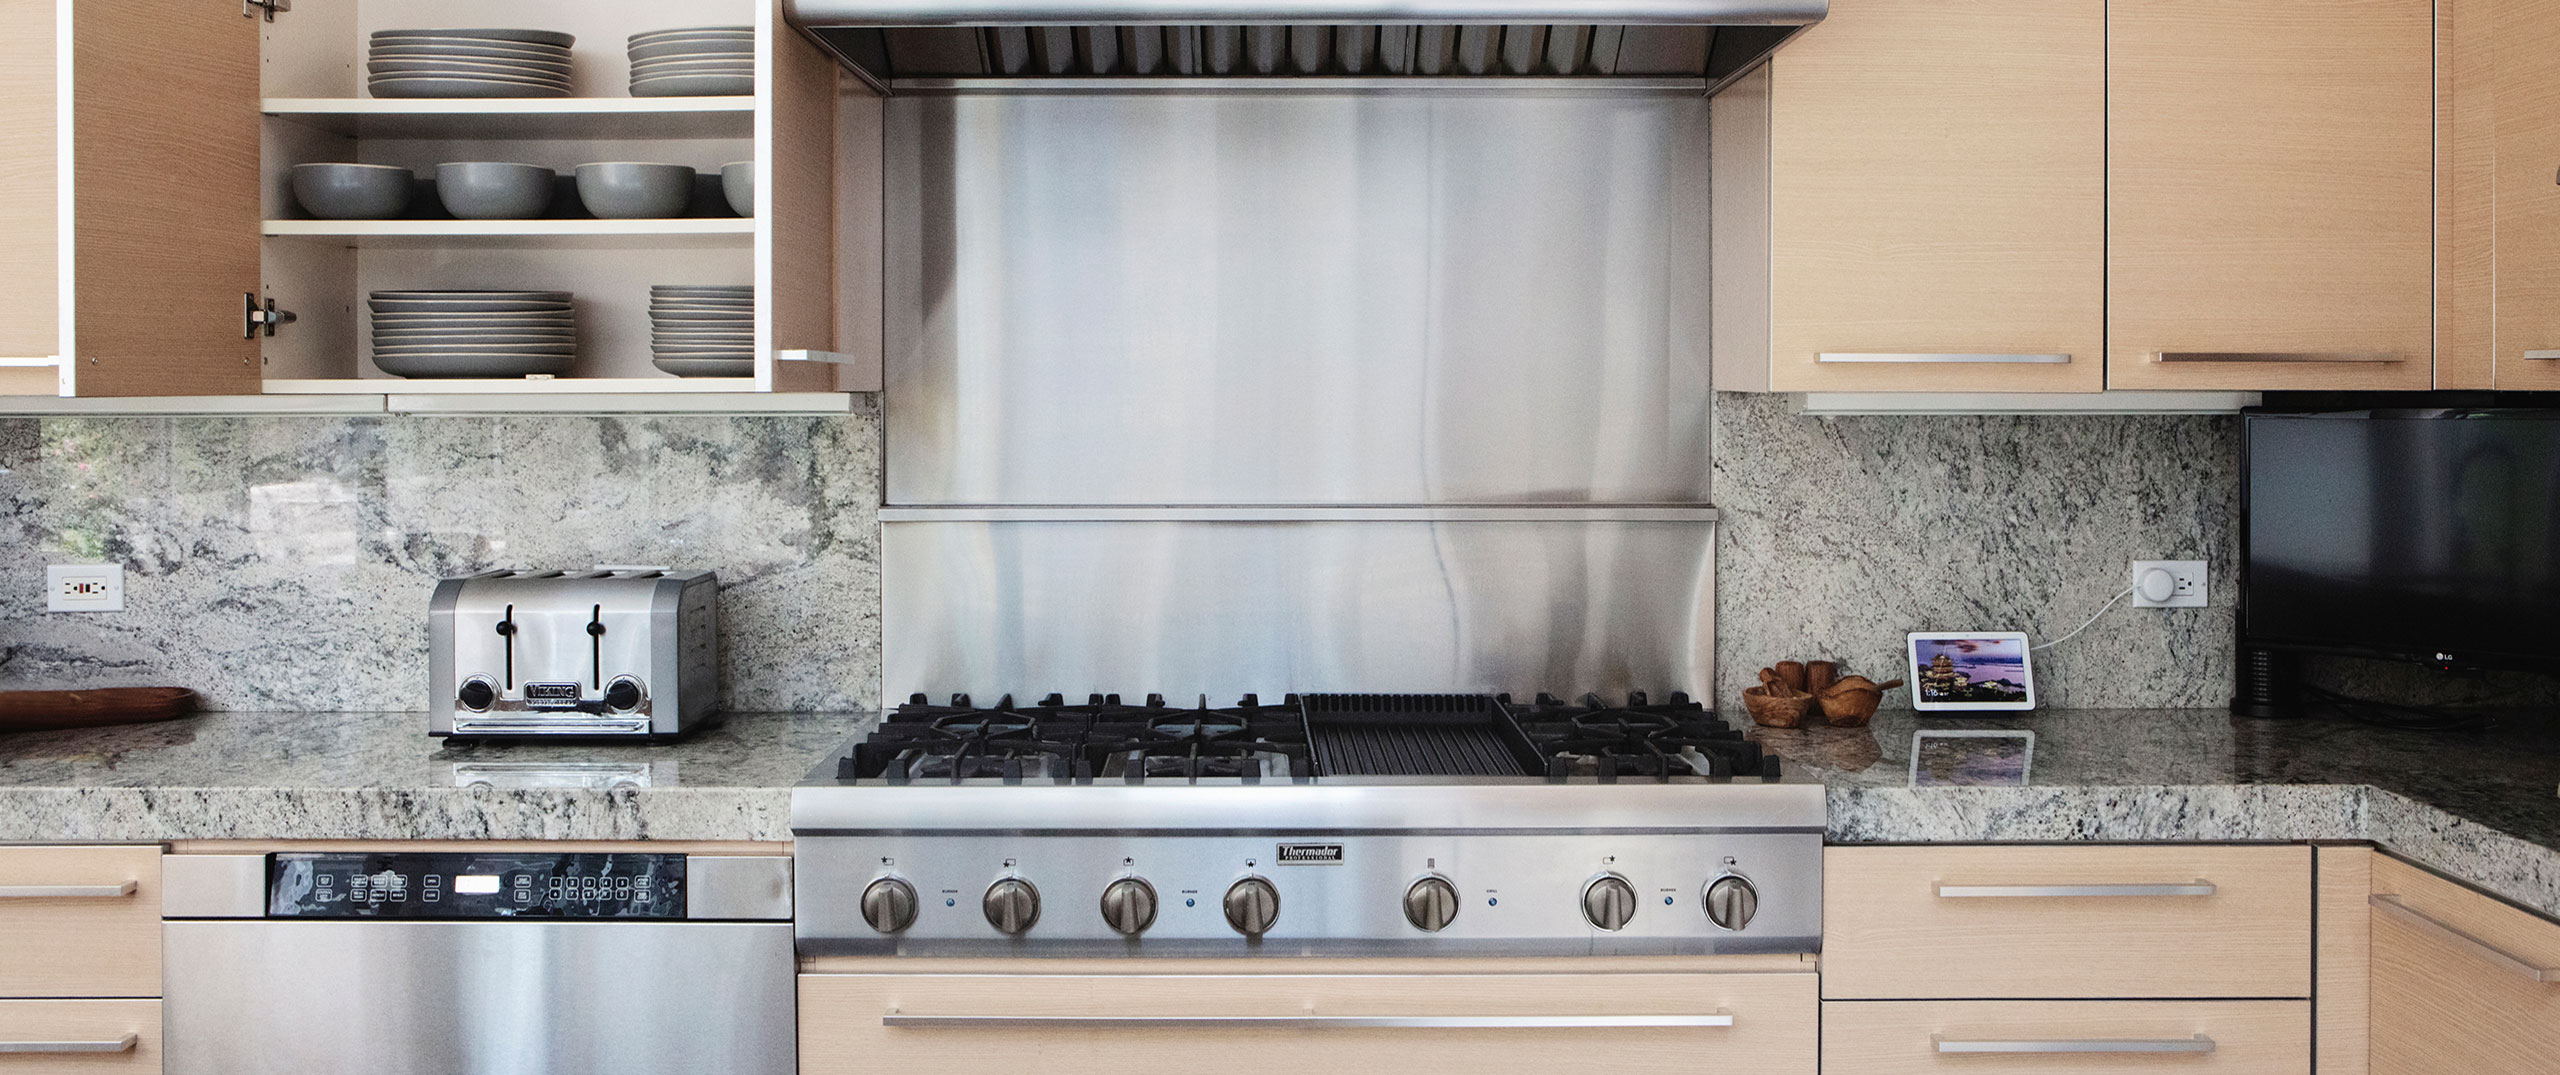 A clean modern kitchen with stainless steel appliances